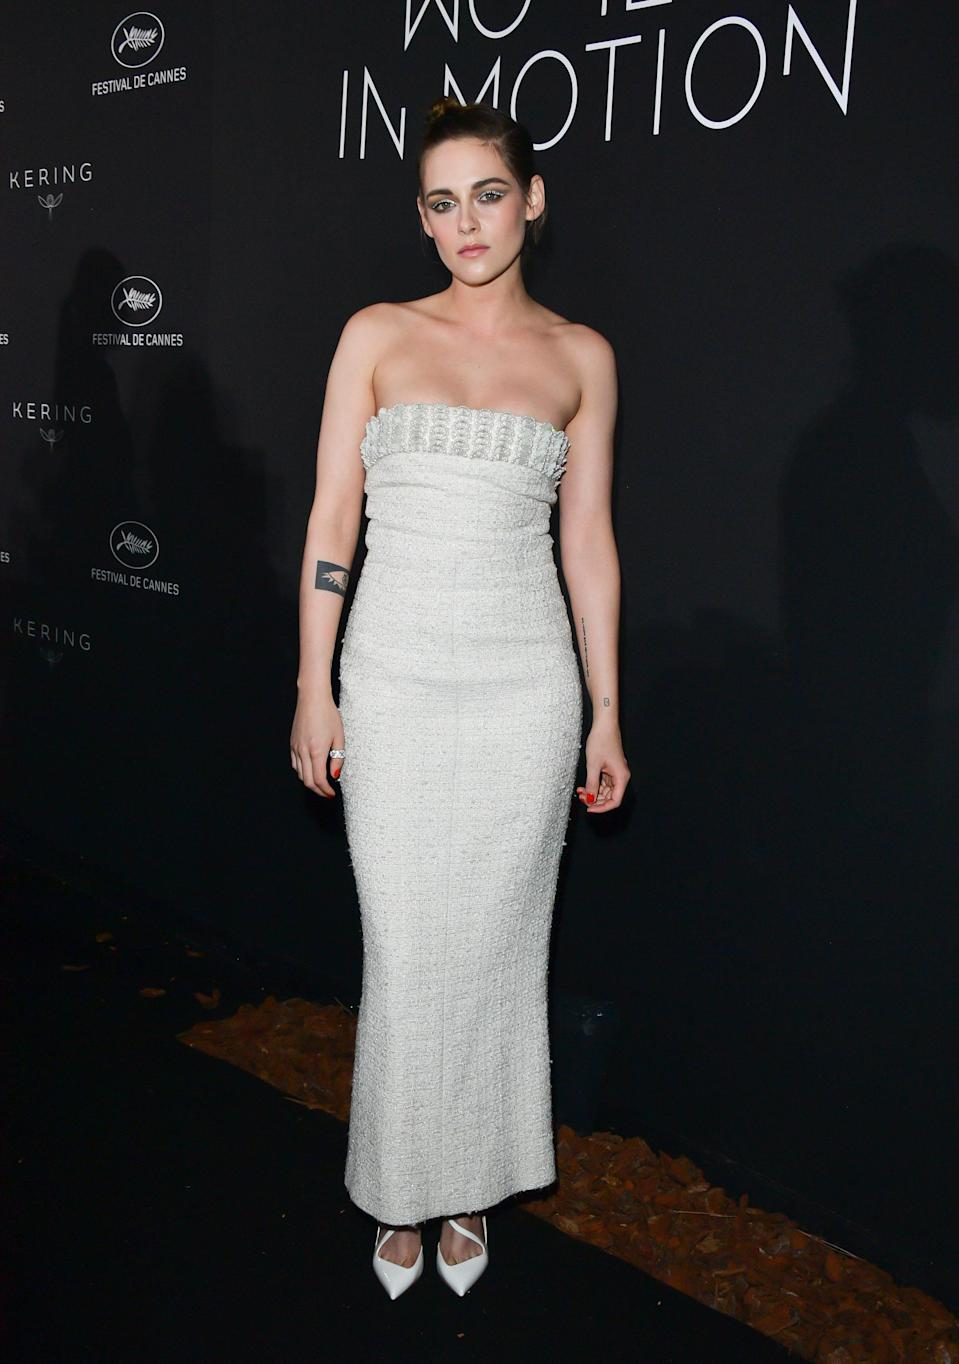 <p>Kristen Stewart was clad in yet another Chanel number for the Kering Women In Motion dinner. This time it was a tweet, white column dress with embellishment, which she wore with white pumps. [Photo: Getty] </p>